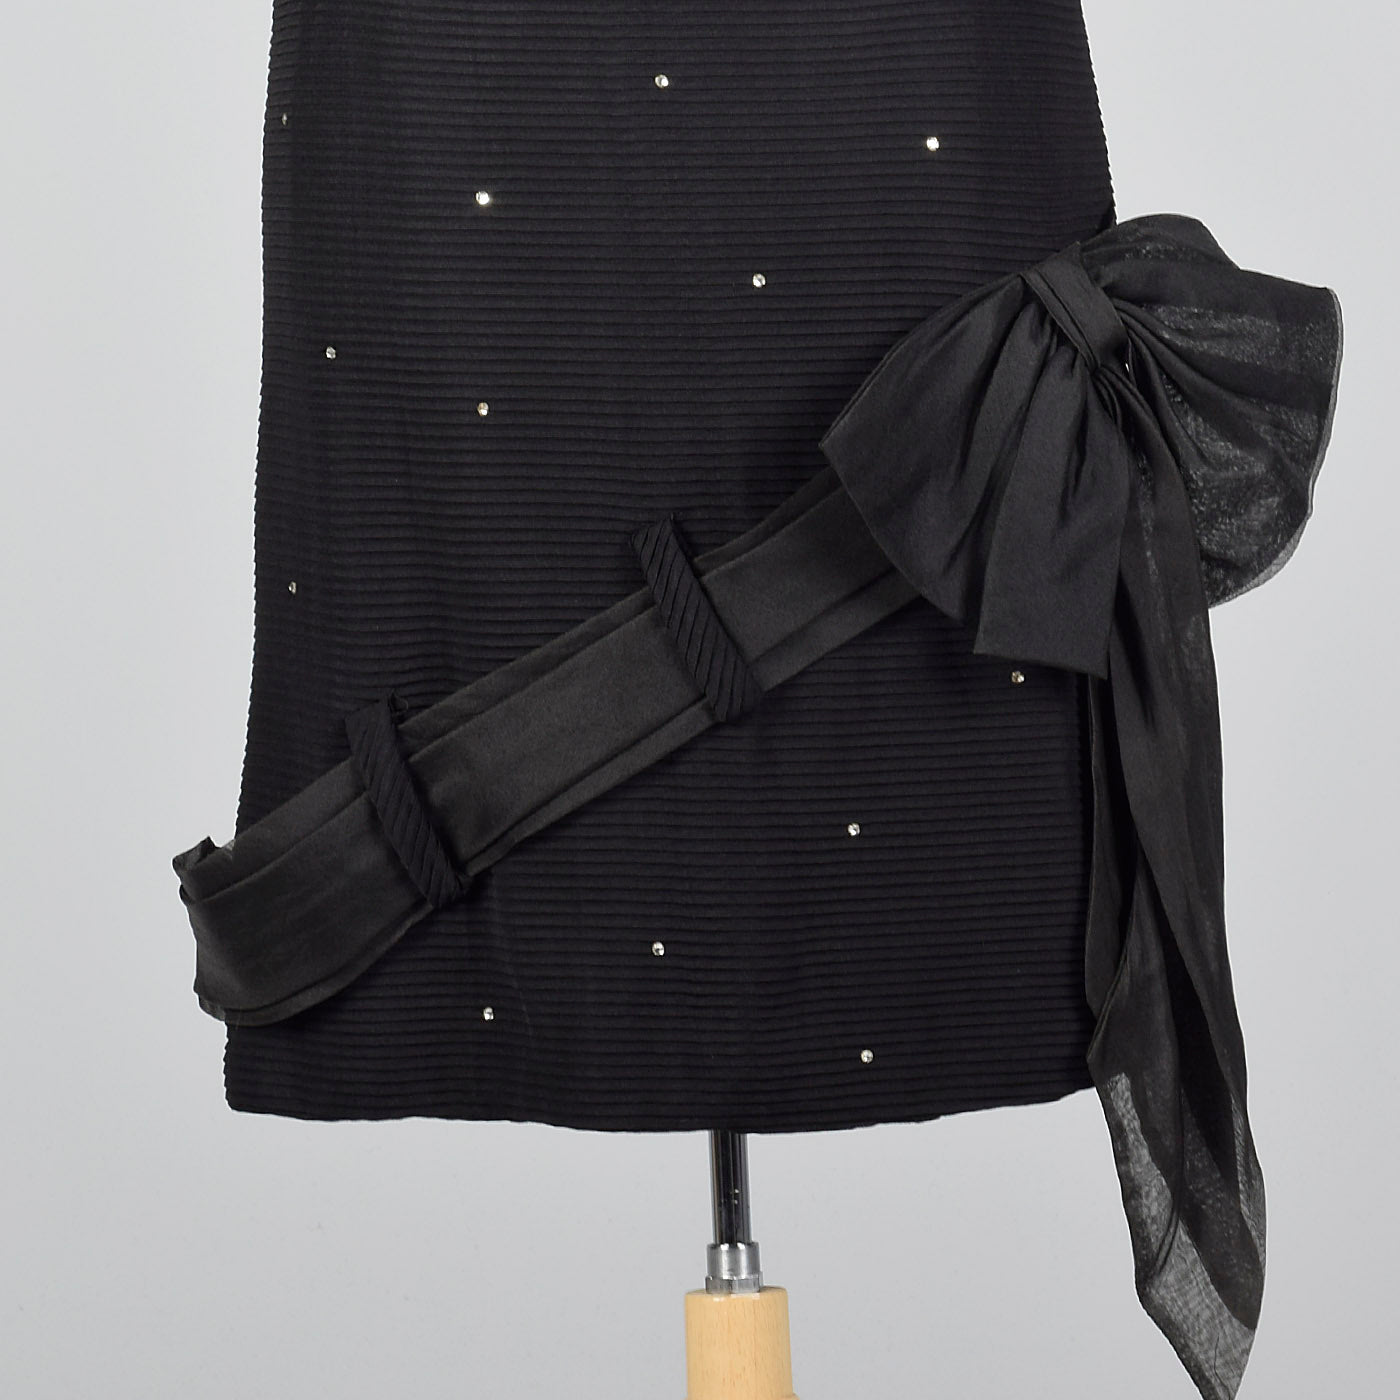 1950s Black Dress with Rhinestones and Asymmetric Bow